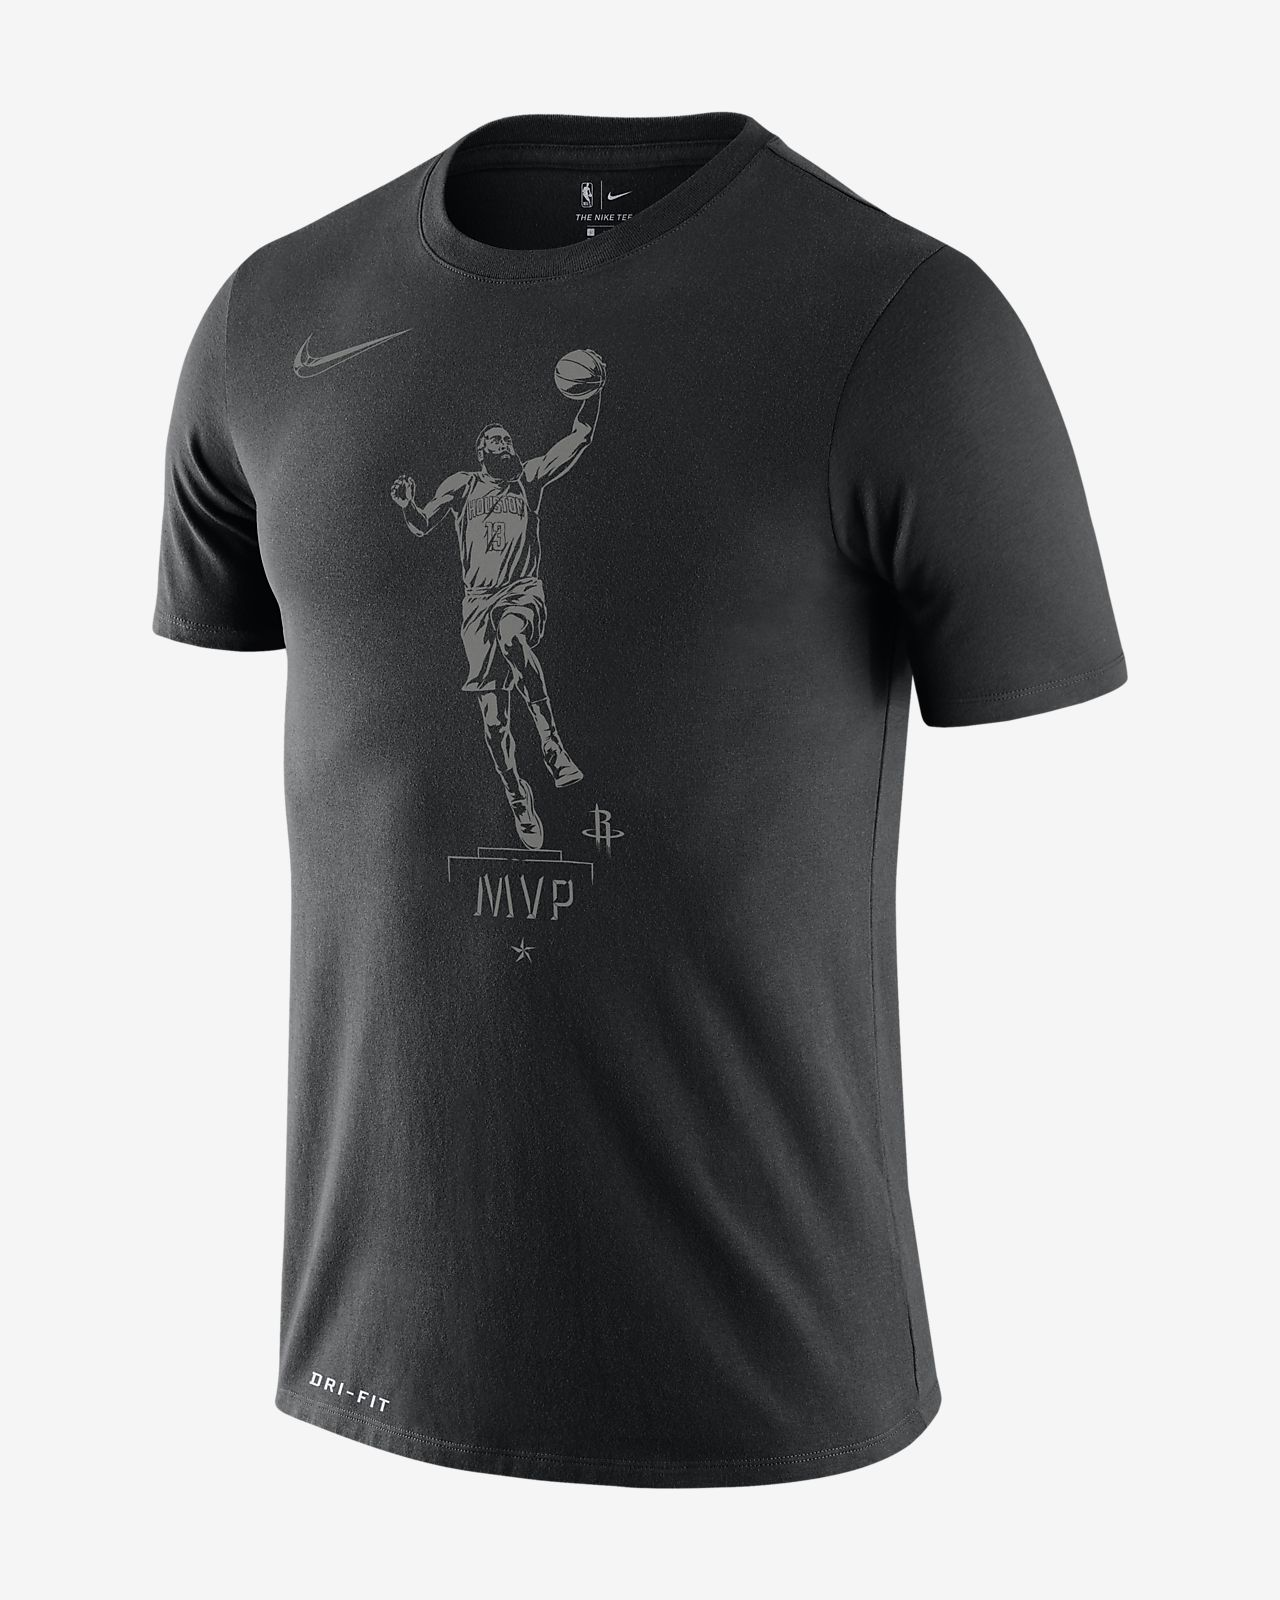 Tee-shirt NBA James Harden Nike Dri-FIT « MVP » pour Homme